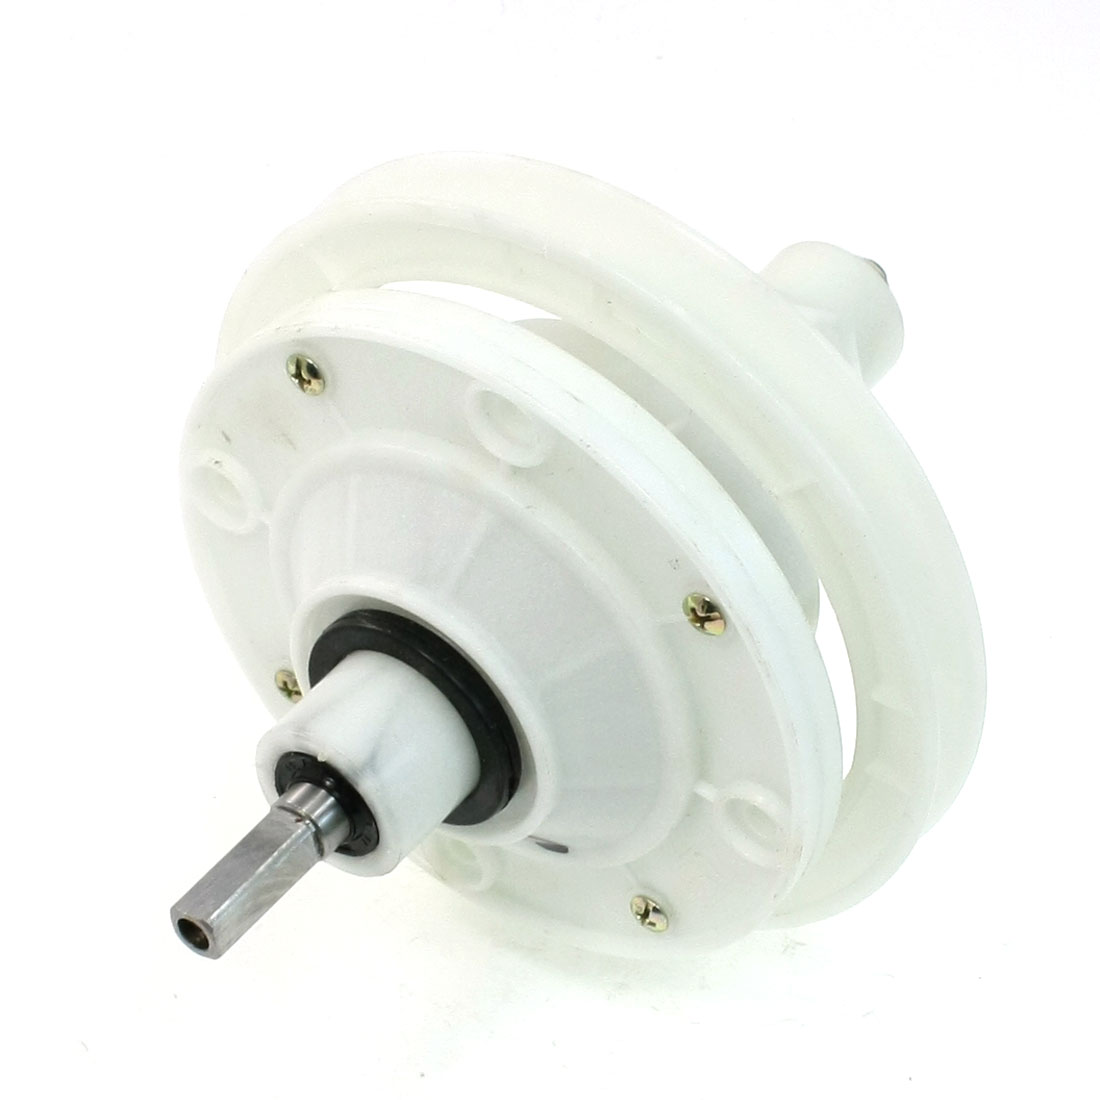 "7.9"" Long Stainless Steel Shaft NBR Washing Machine Gear Reduction Reducer"